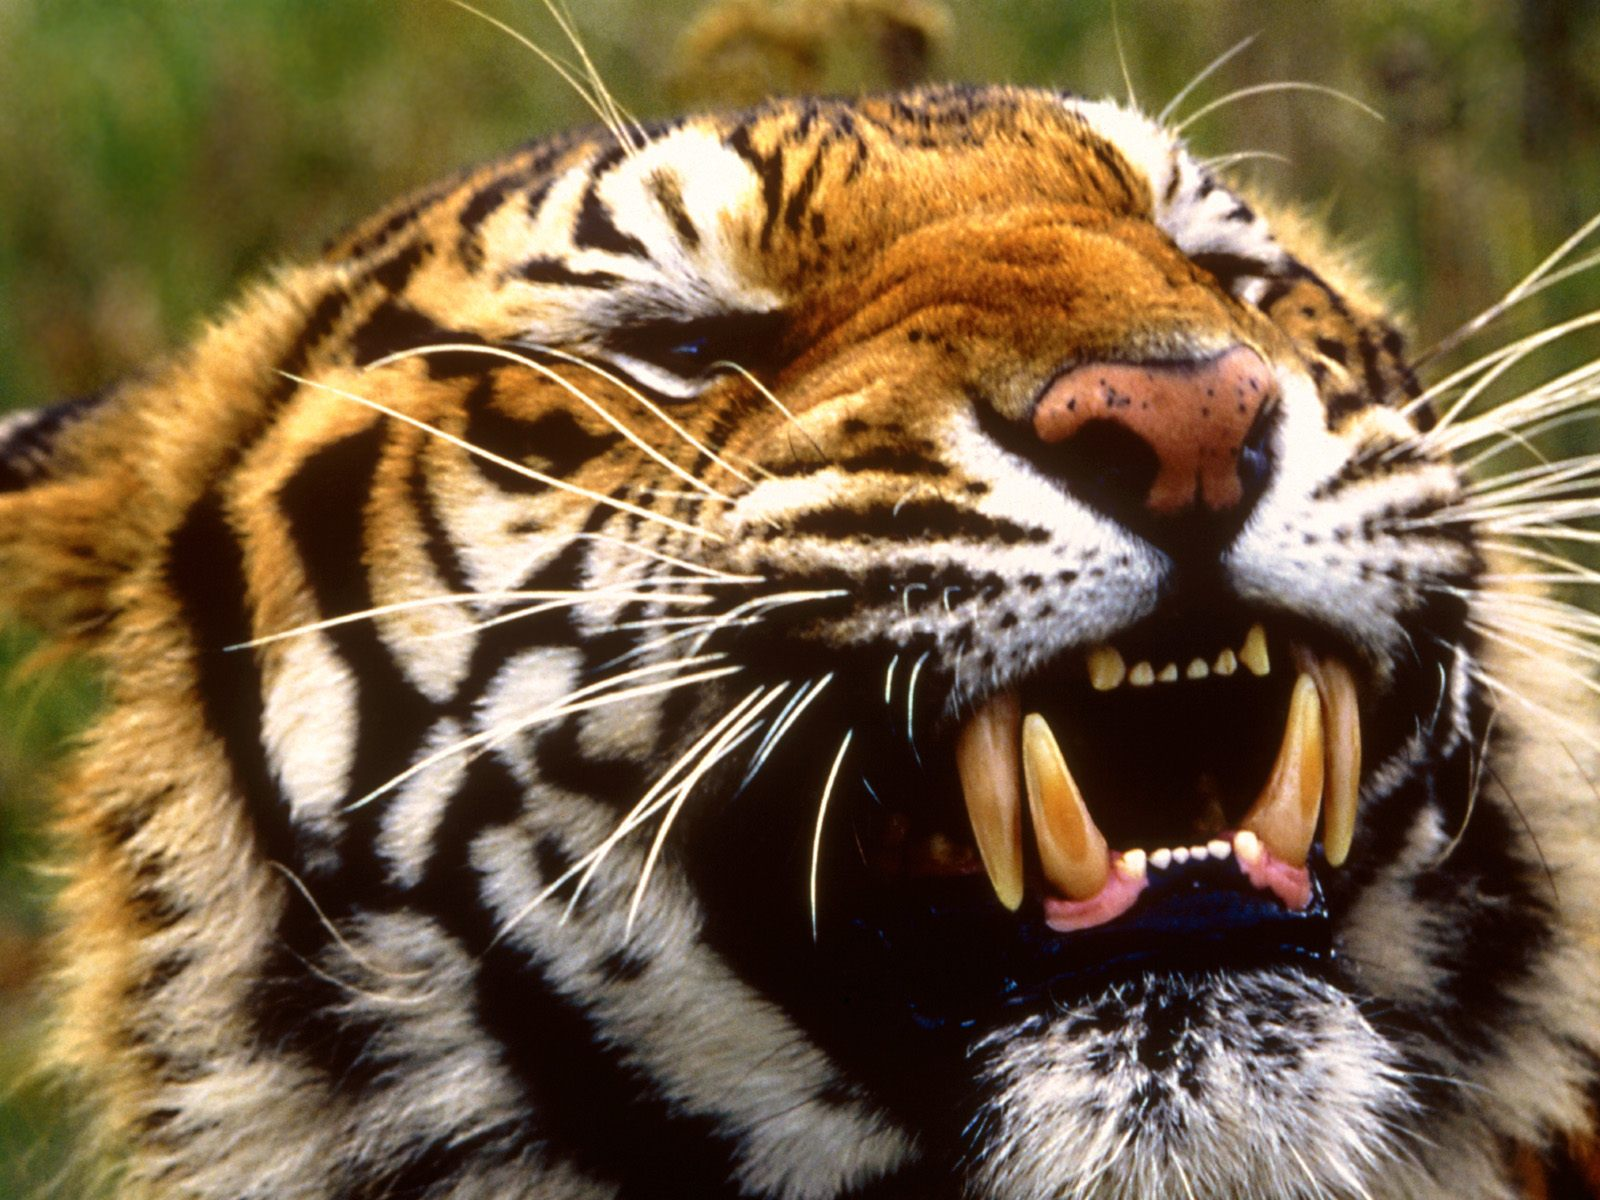 http://1.bp.blogspot.com/-I4wb4E9GtjQ/UBavUEl8-nI/AAAAAAAAAKE/t_5uWtTzCYE/s1600/tiger_wallpapers_hd_bengal-tiger-Desktop-wallpaper.jpg